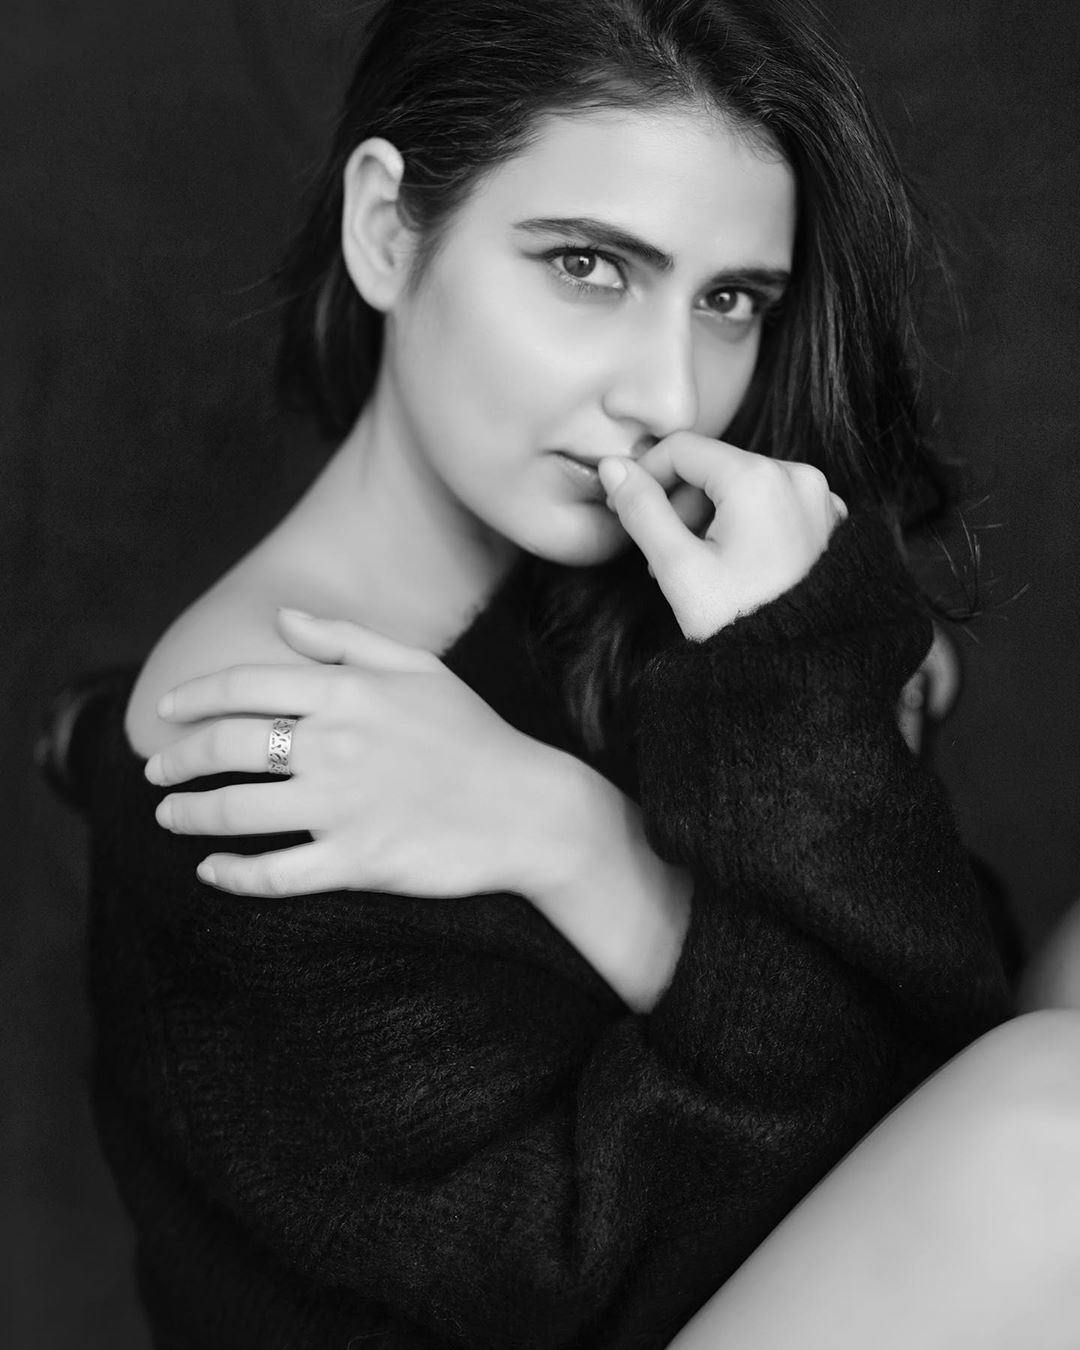 Fatima Sana Shaikh Biography Wiki Net Worth Birthday Height, Weight Age Date of Birth Boyfriend Biodata Family Info